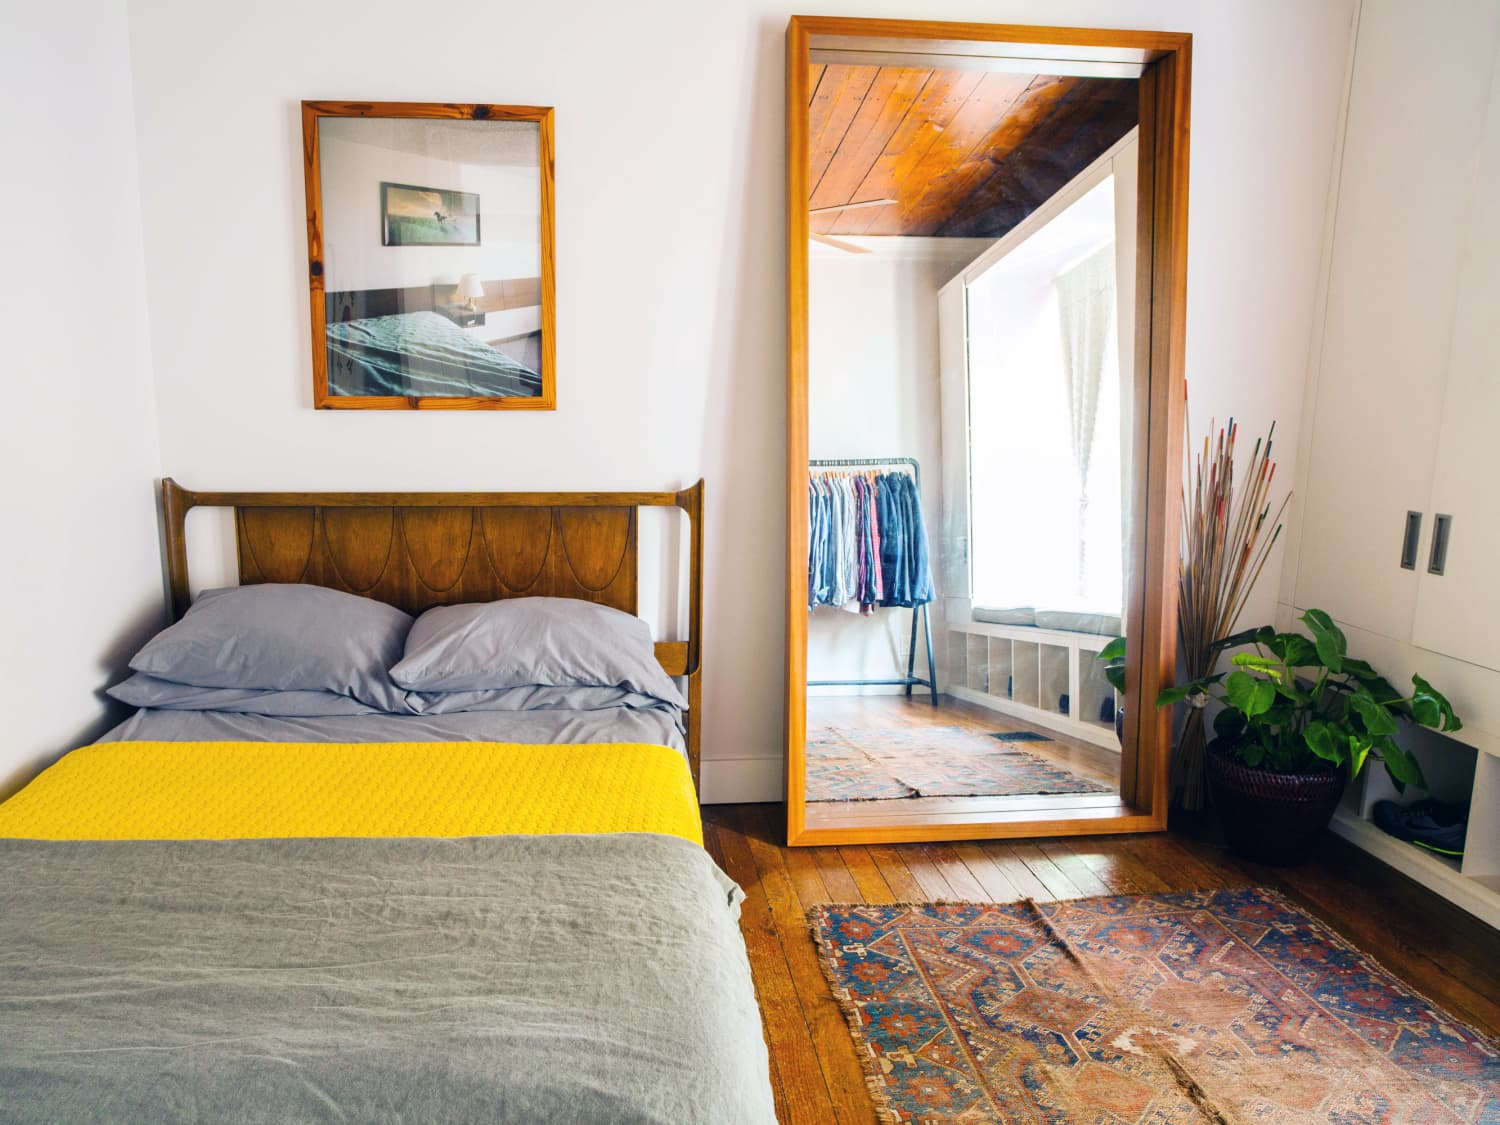 The Best Floor Mirrors: Target, CB8, Wayfair & More  Apartment